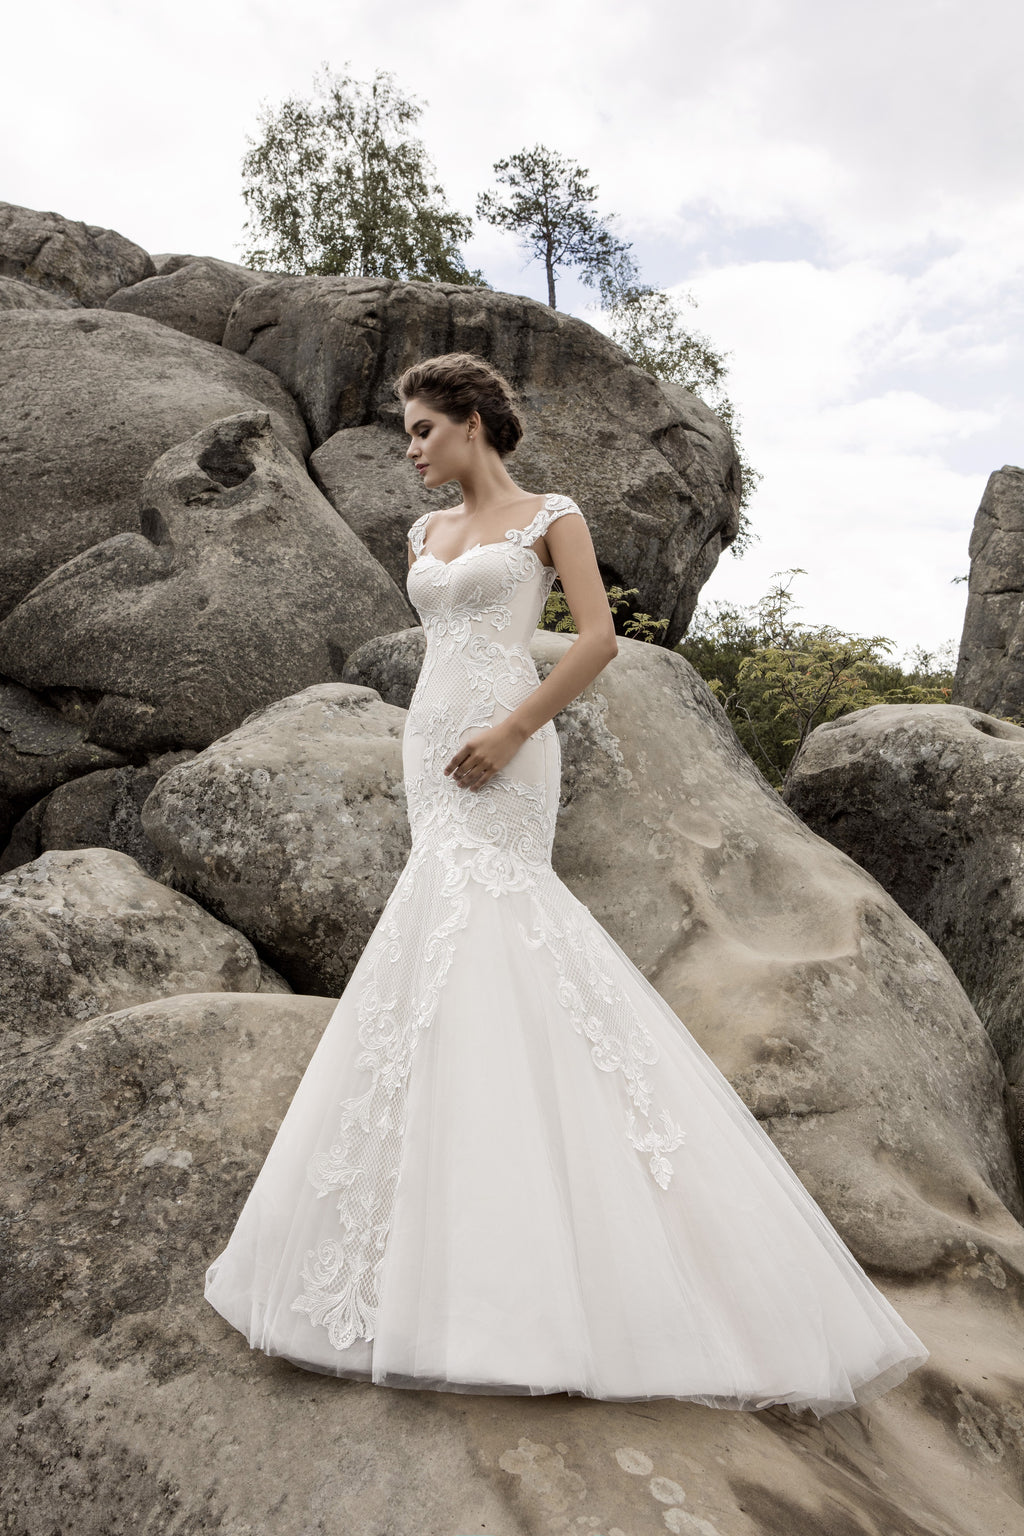 This figure flattering mermaid dress has a sweetheart neckline and a gorgeous illusion back decorated with guipure lace.